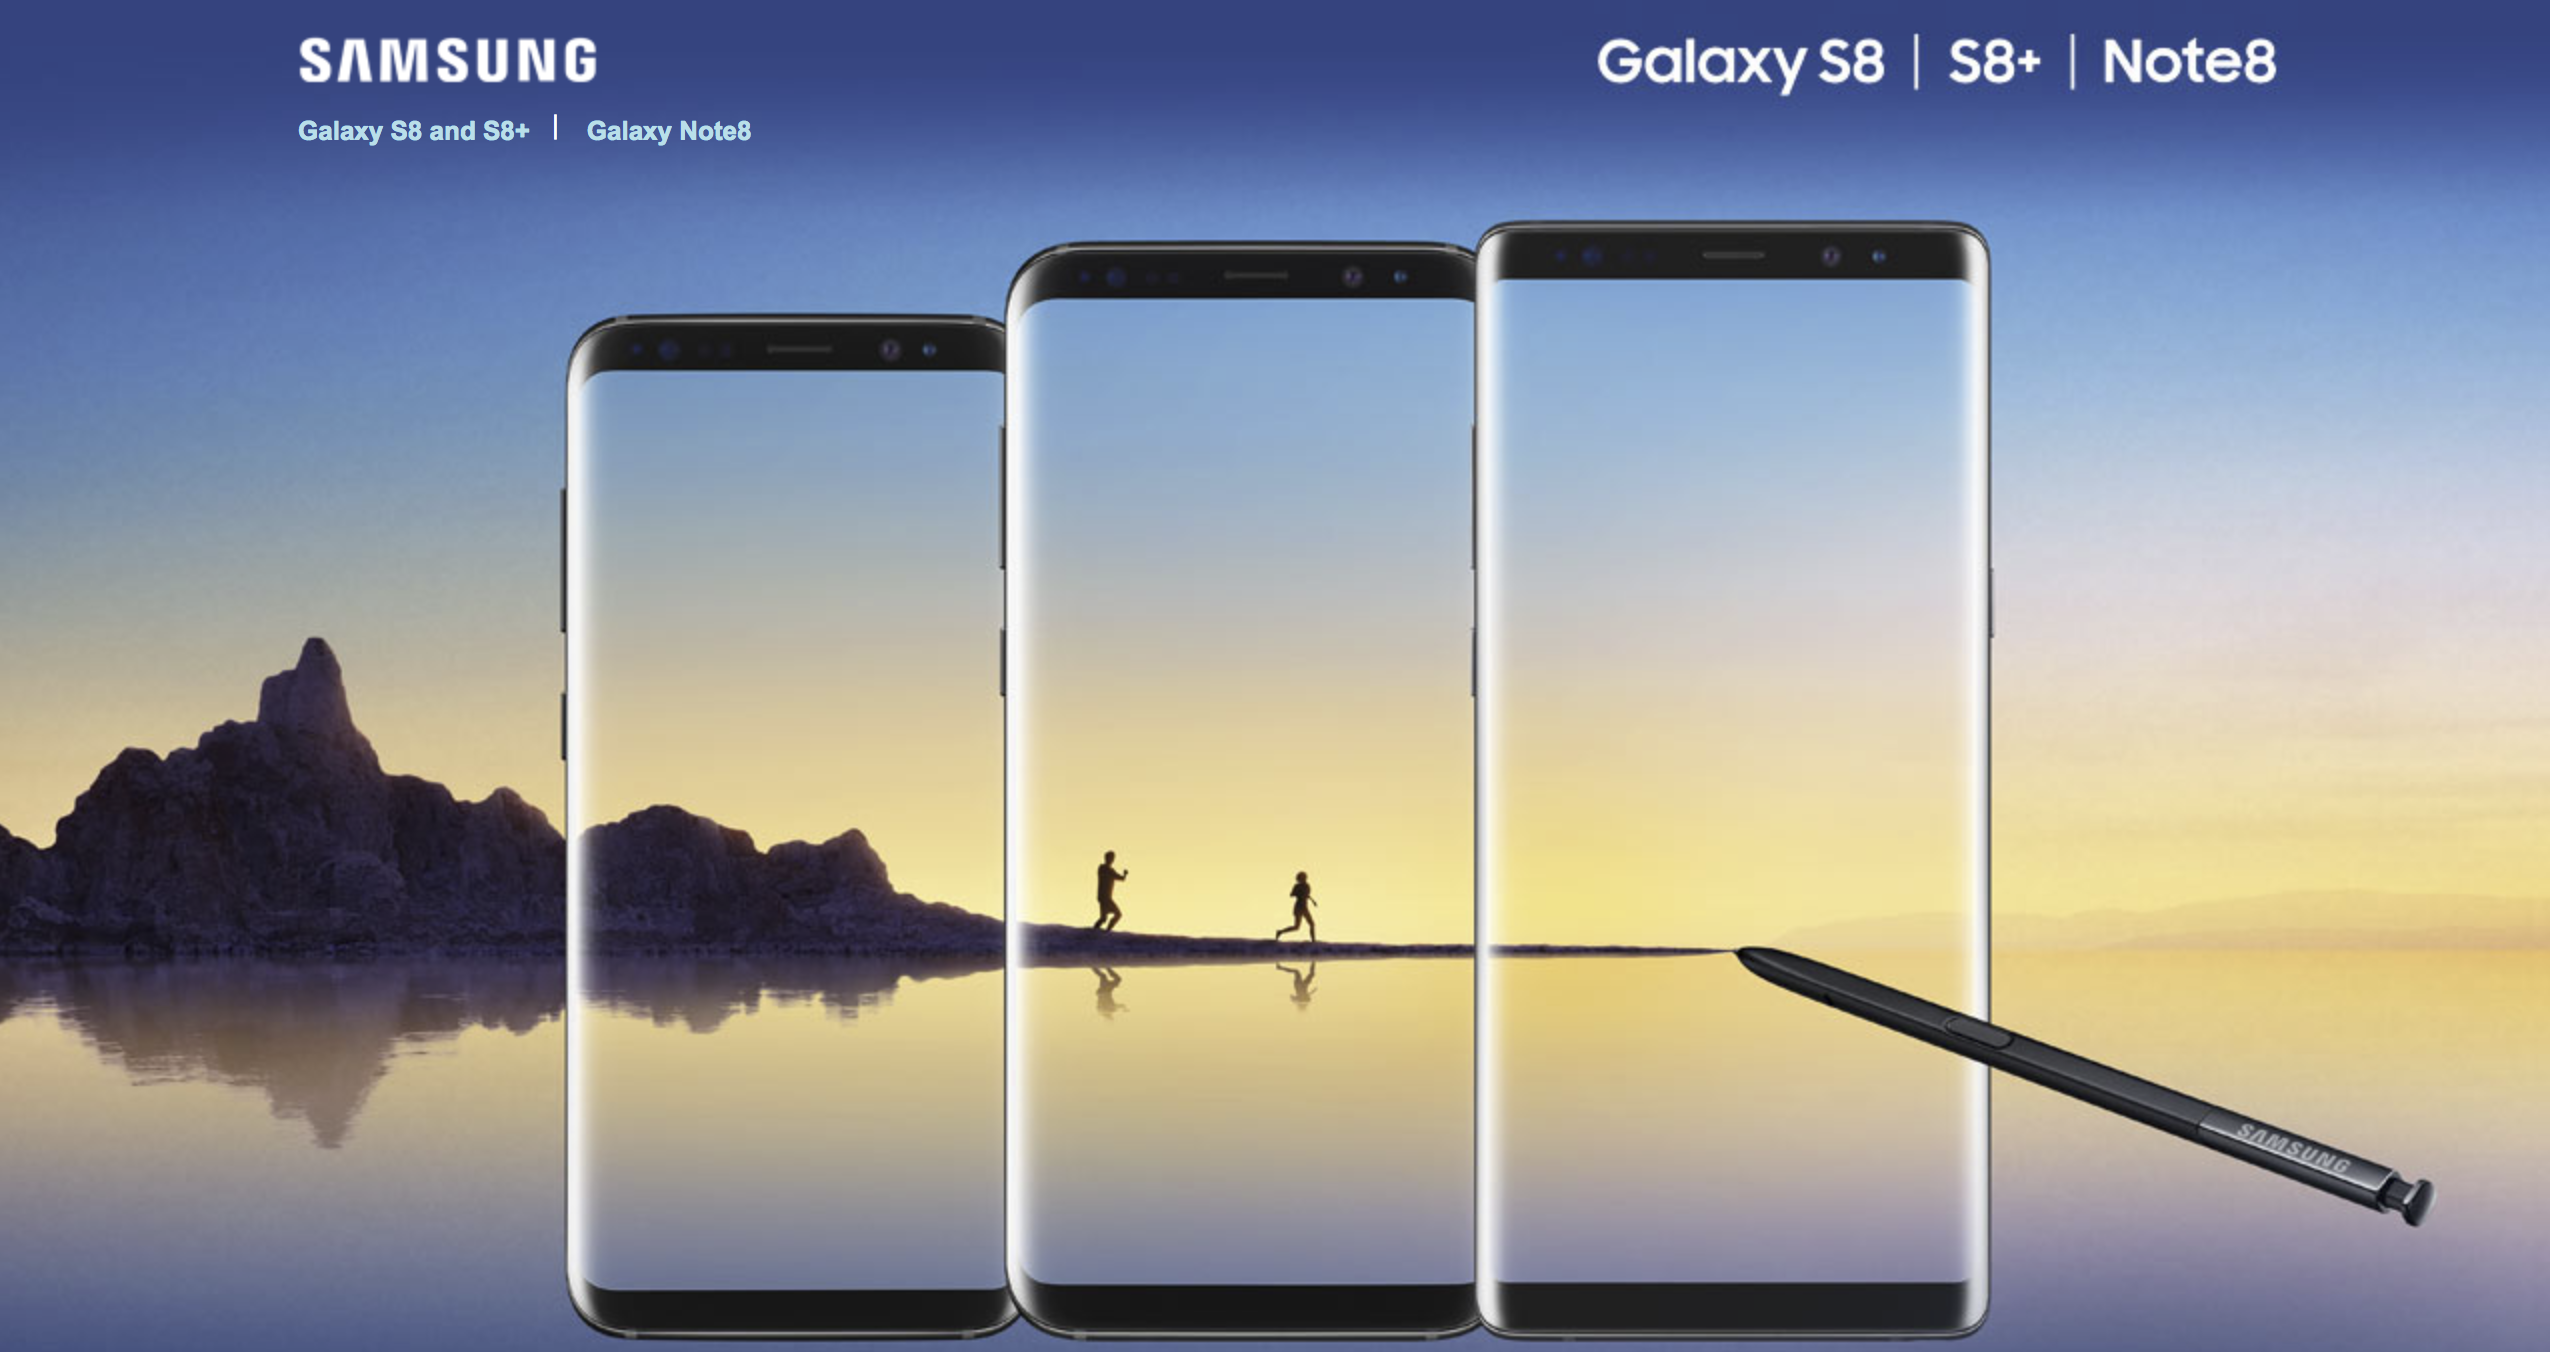 Samsungs Three Flagships The Galaxy S8 And Note8 Are Fantastic Phones Unfortunately Theyre Also Pricey With Some Variants Of